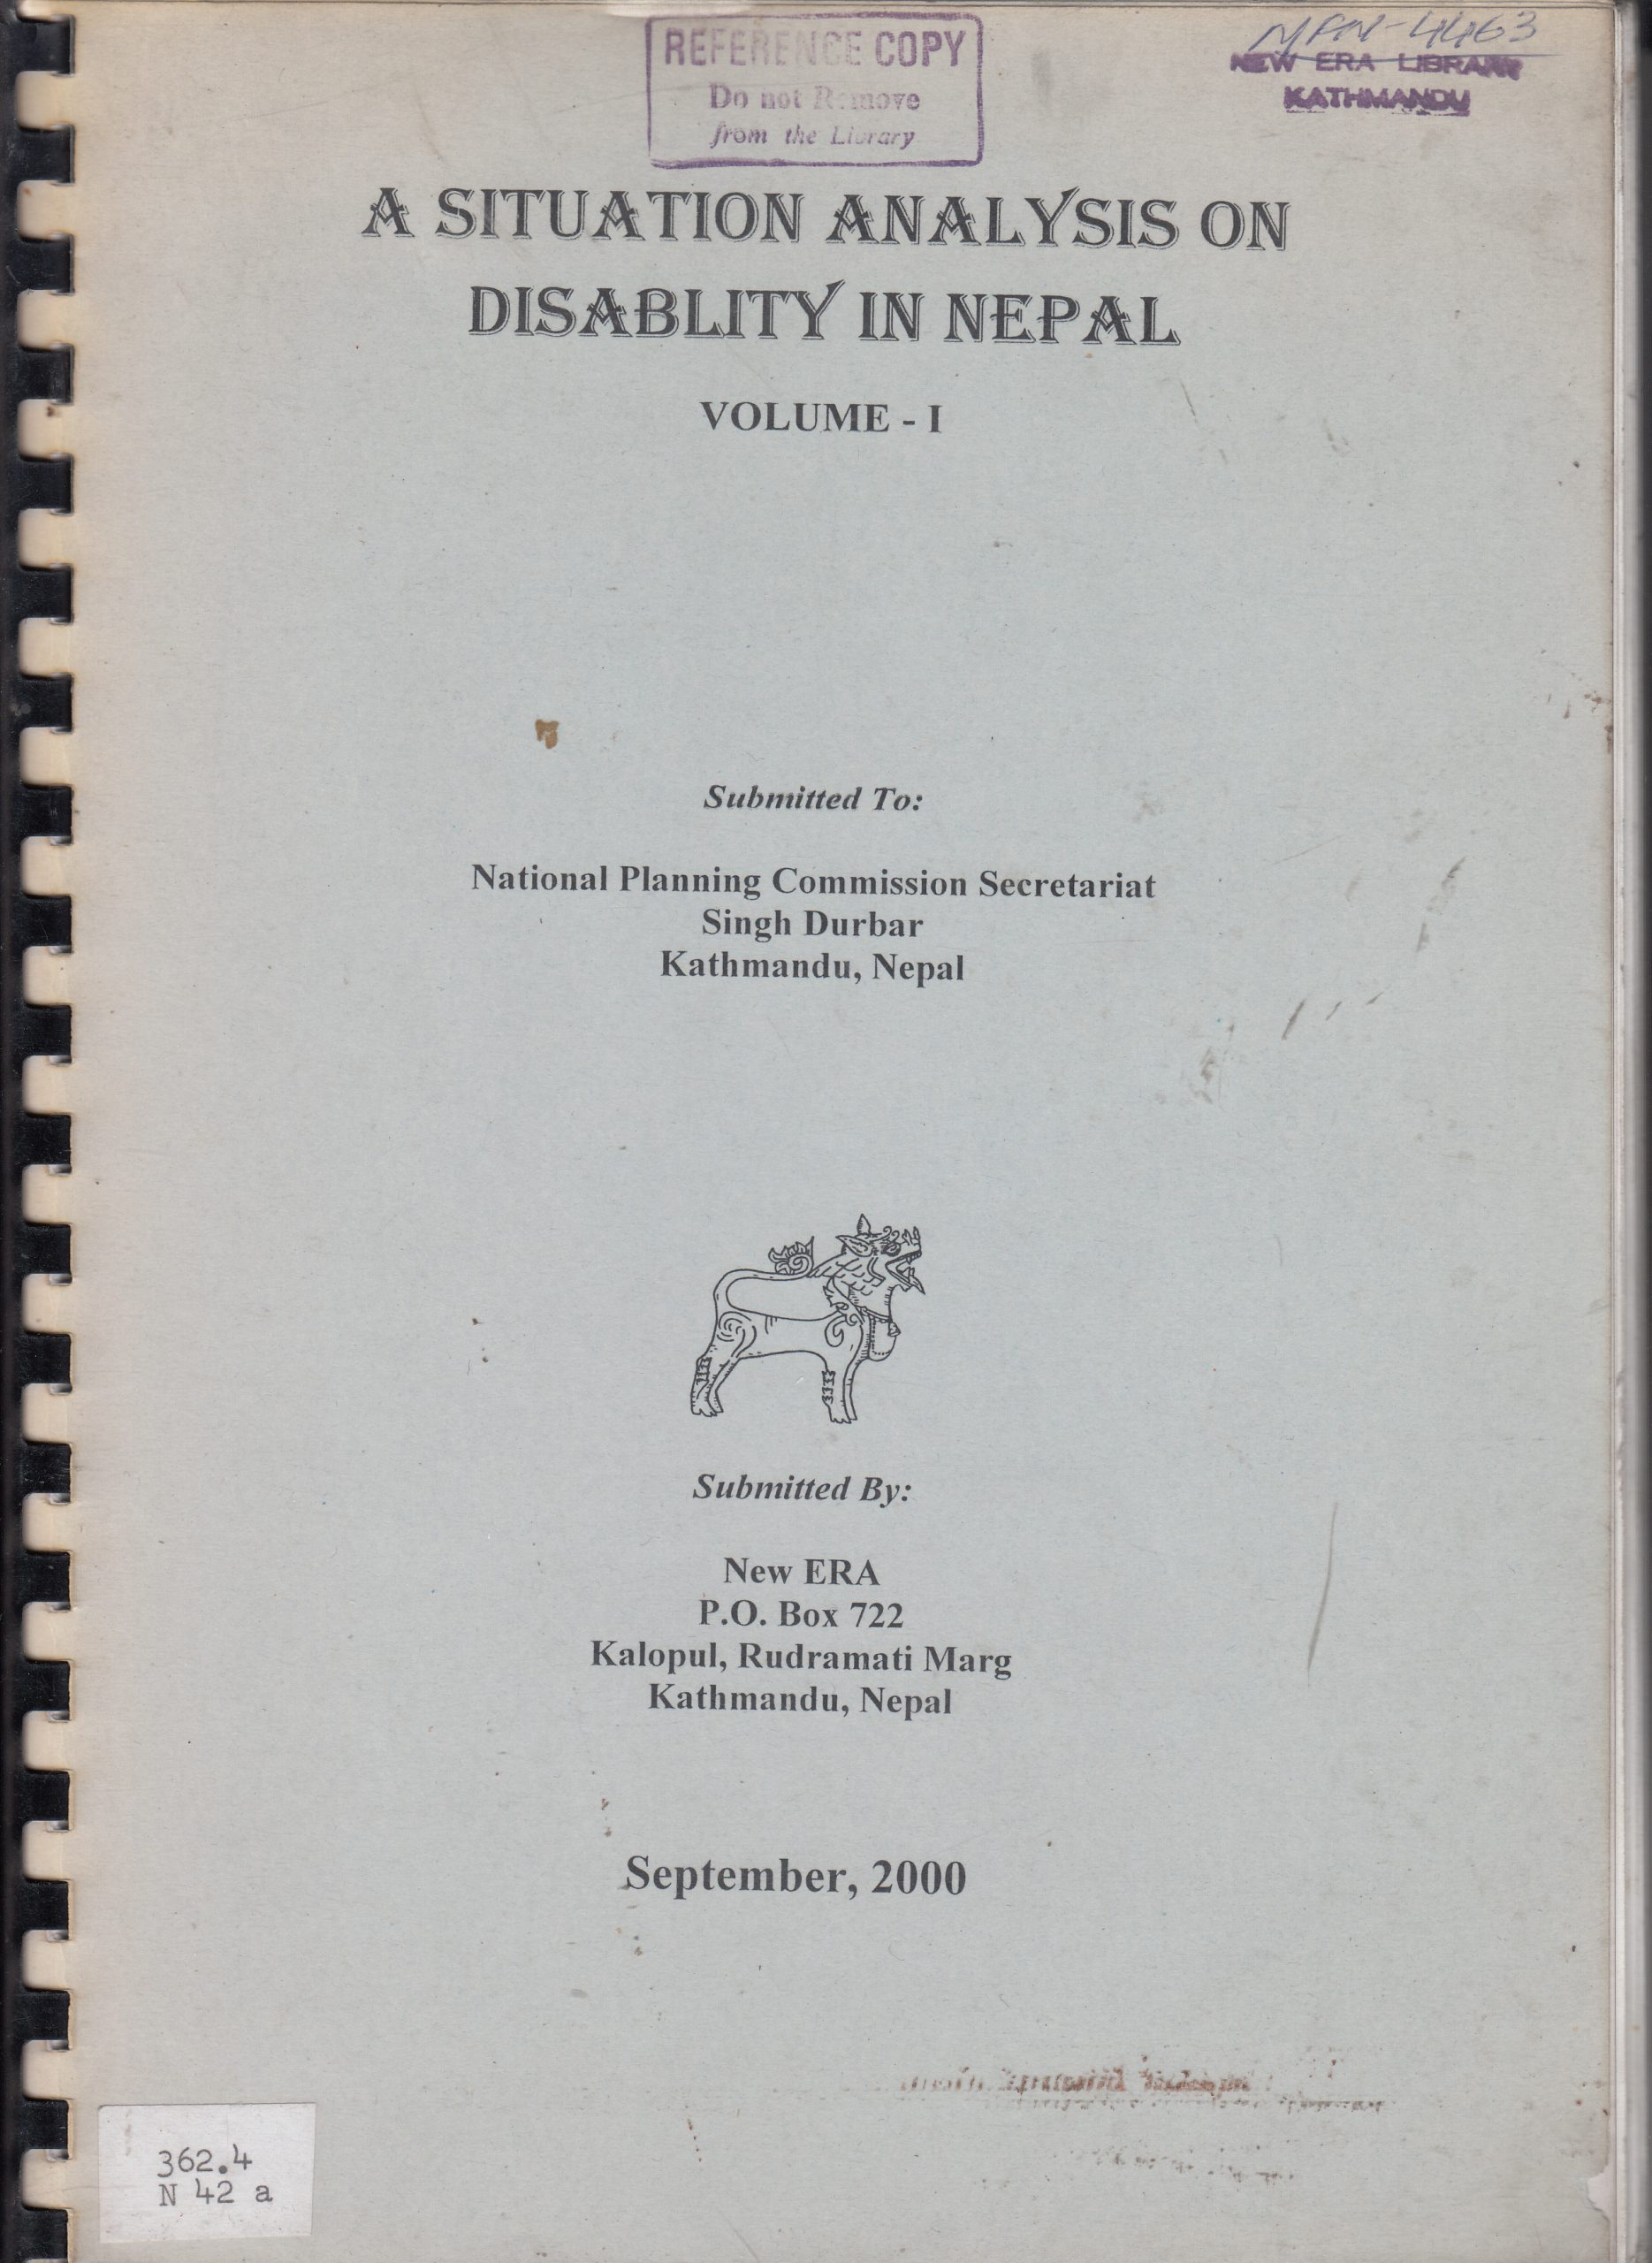 A Situation Analysis on Disability in Nepal